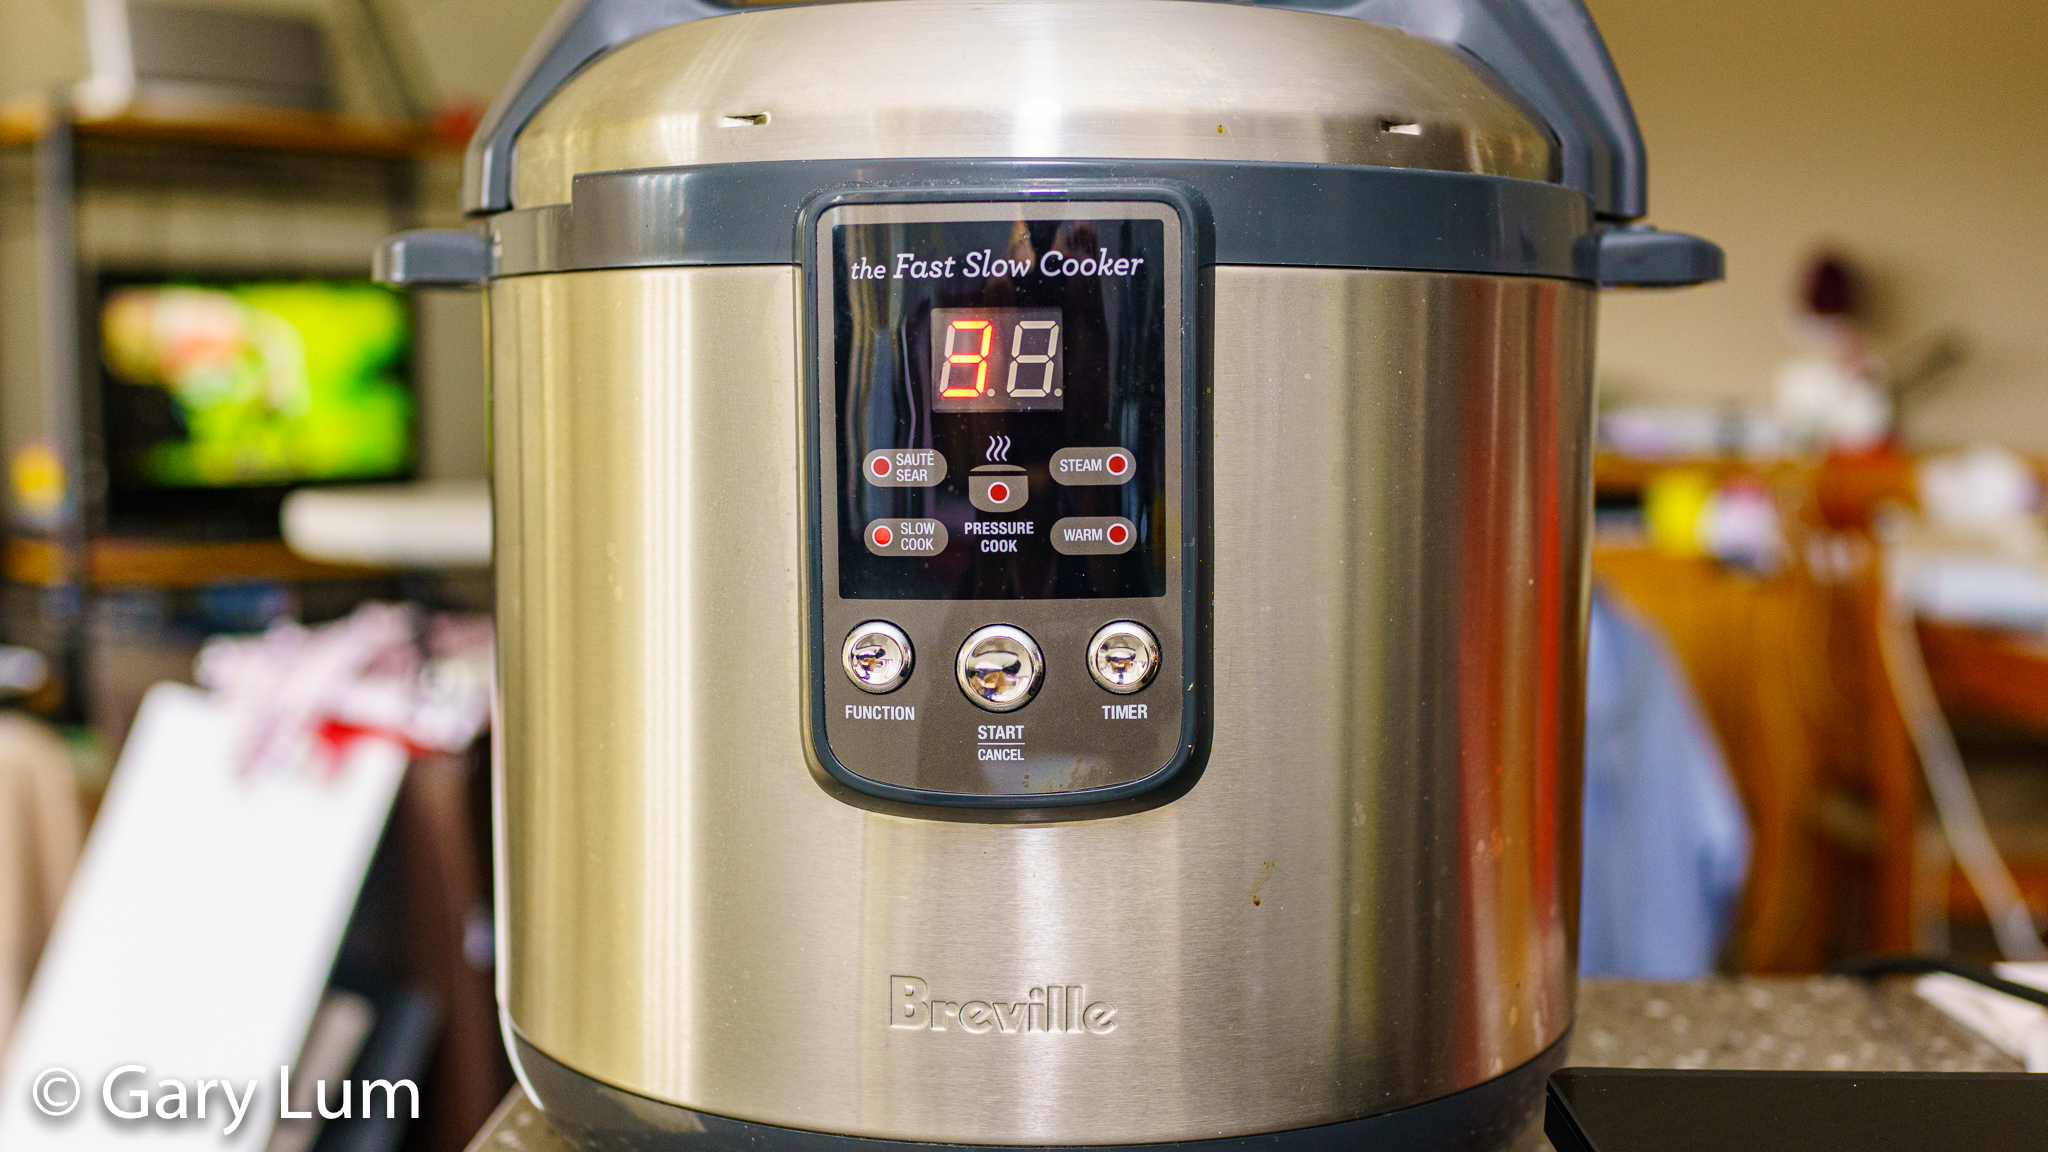 Breville Fast Slow Cooker cooking lamb. Gary Lum.